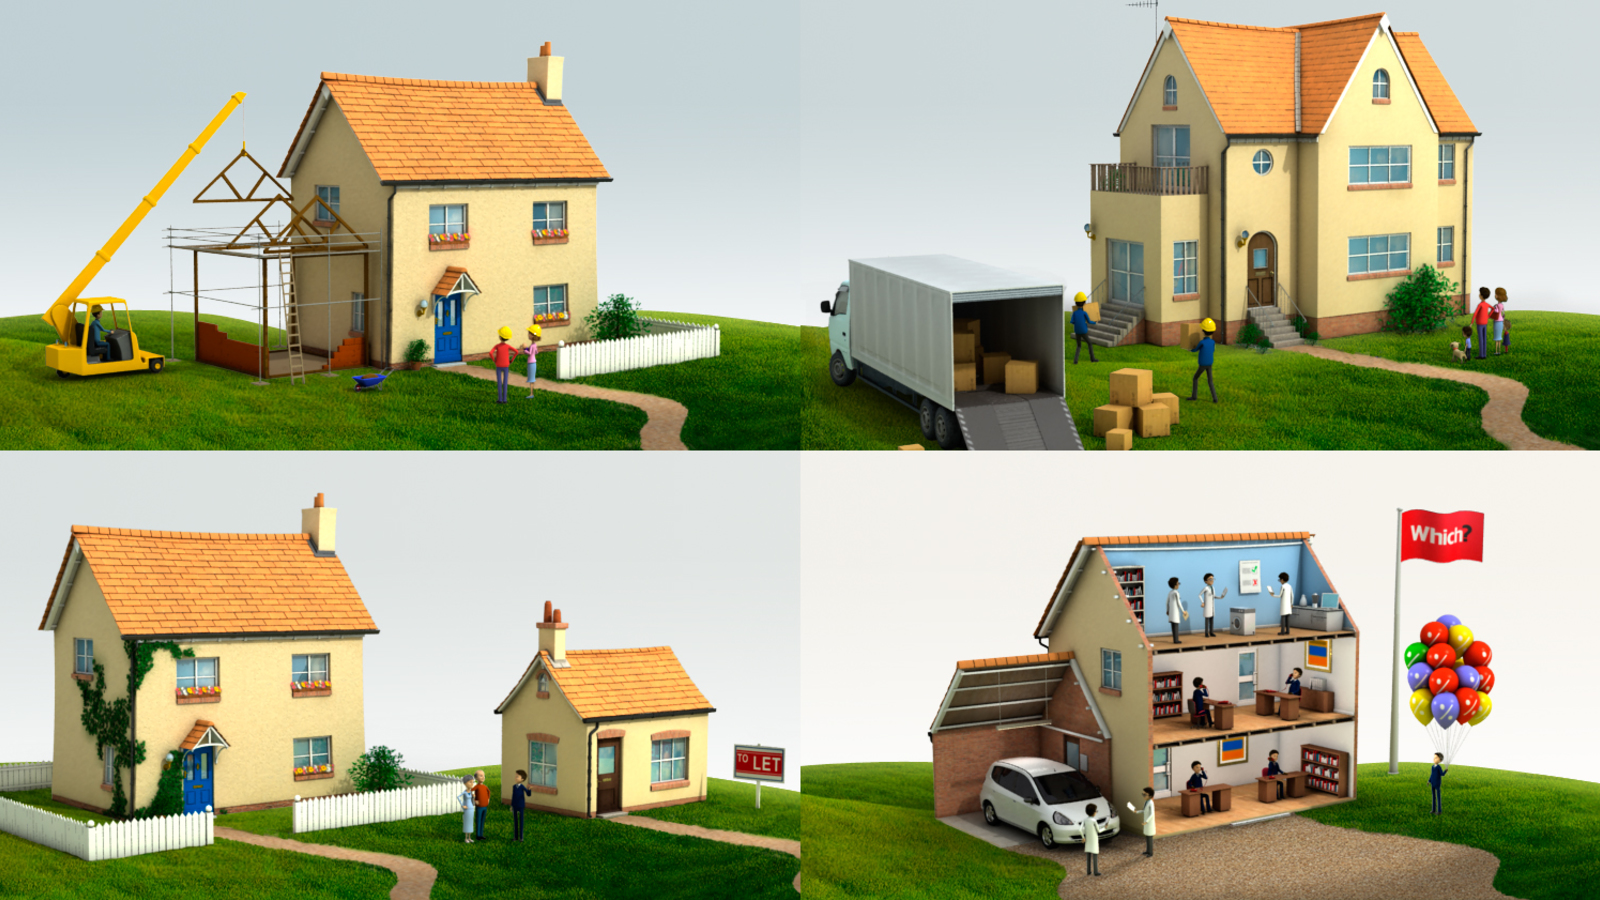 3d render of houses for Which mortgage advisers website